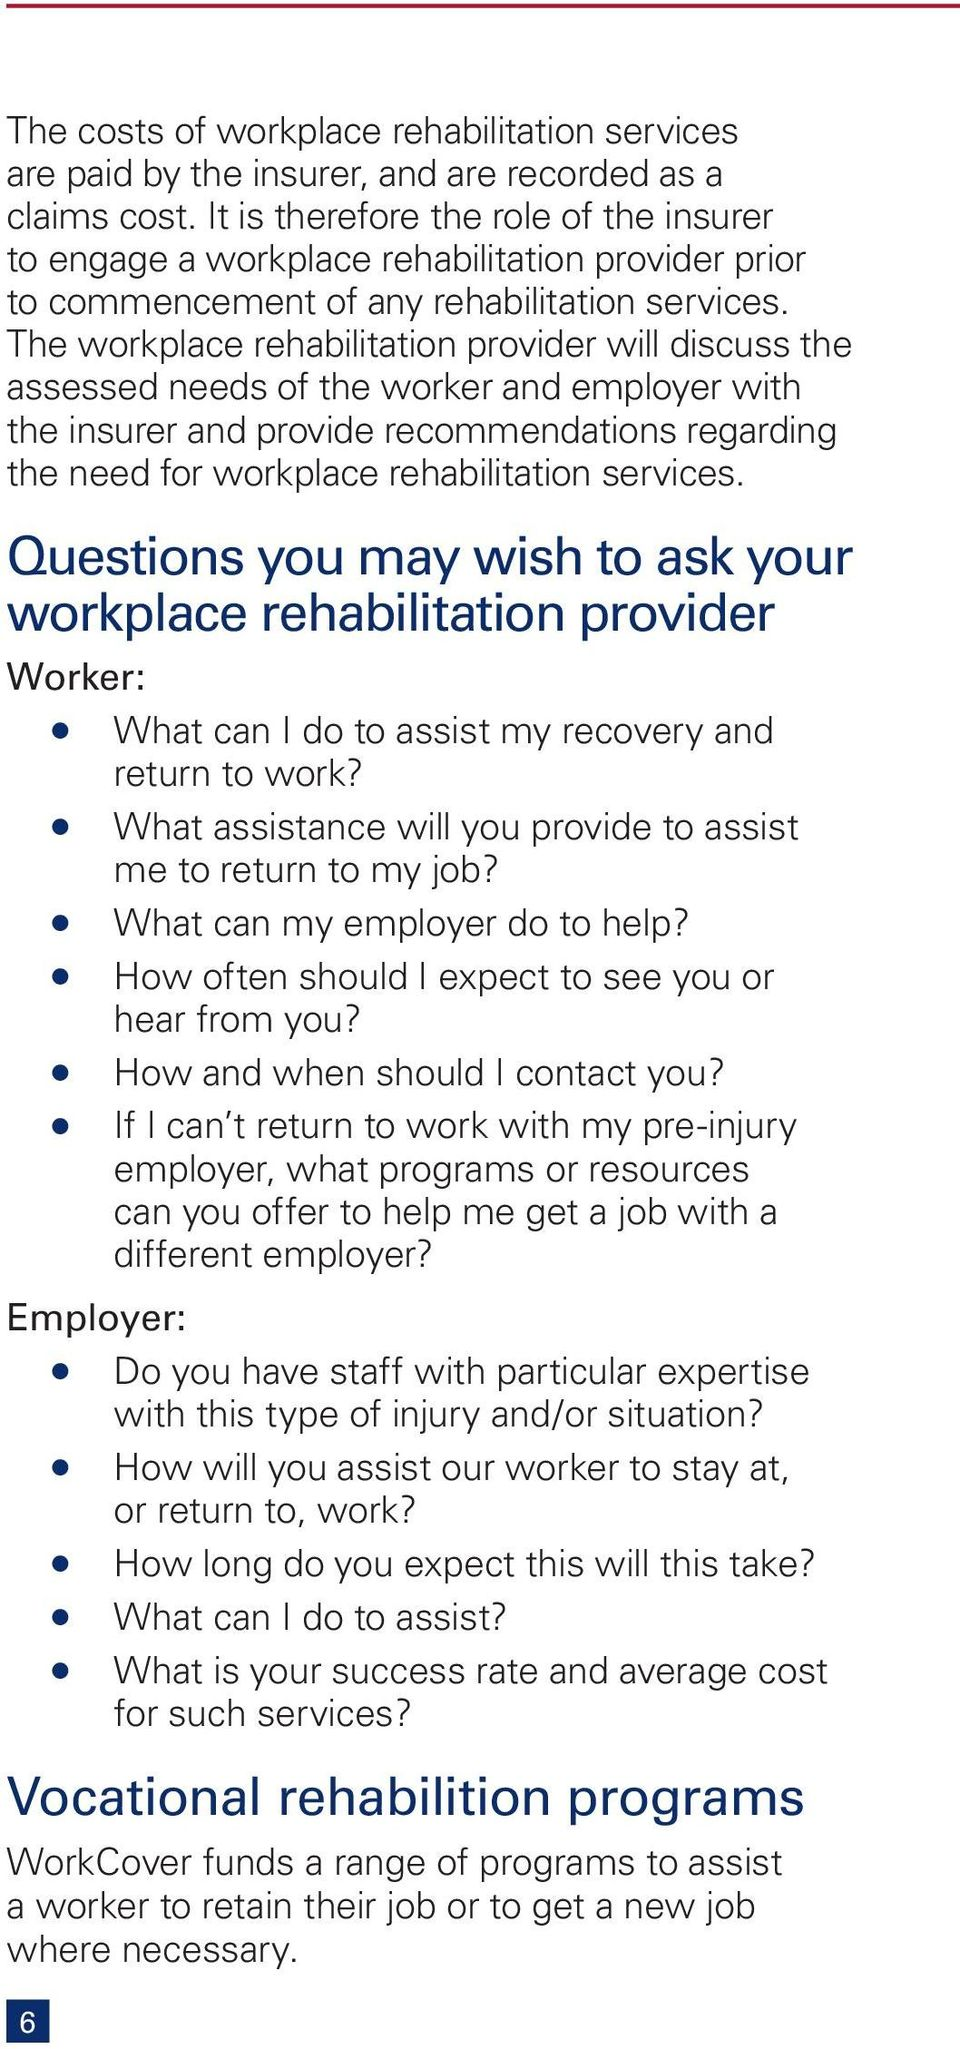 The workplace rehabilitation provider will discuss the assessed needs of the worker and employer with the insurer and provide recommendations regarding the need for workplace rehabilitation services.